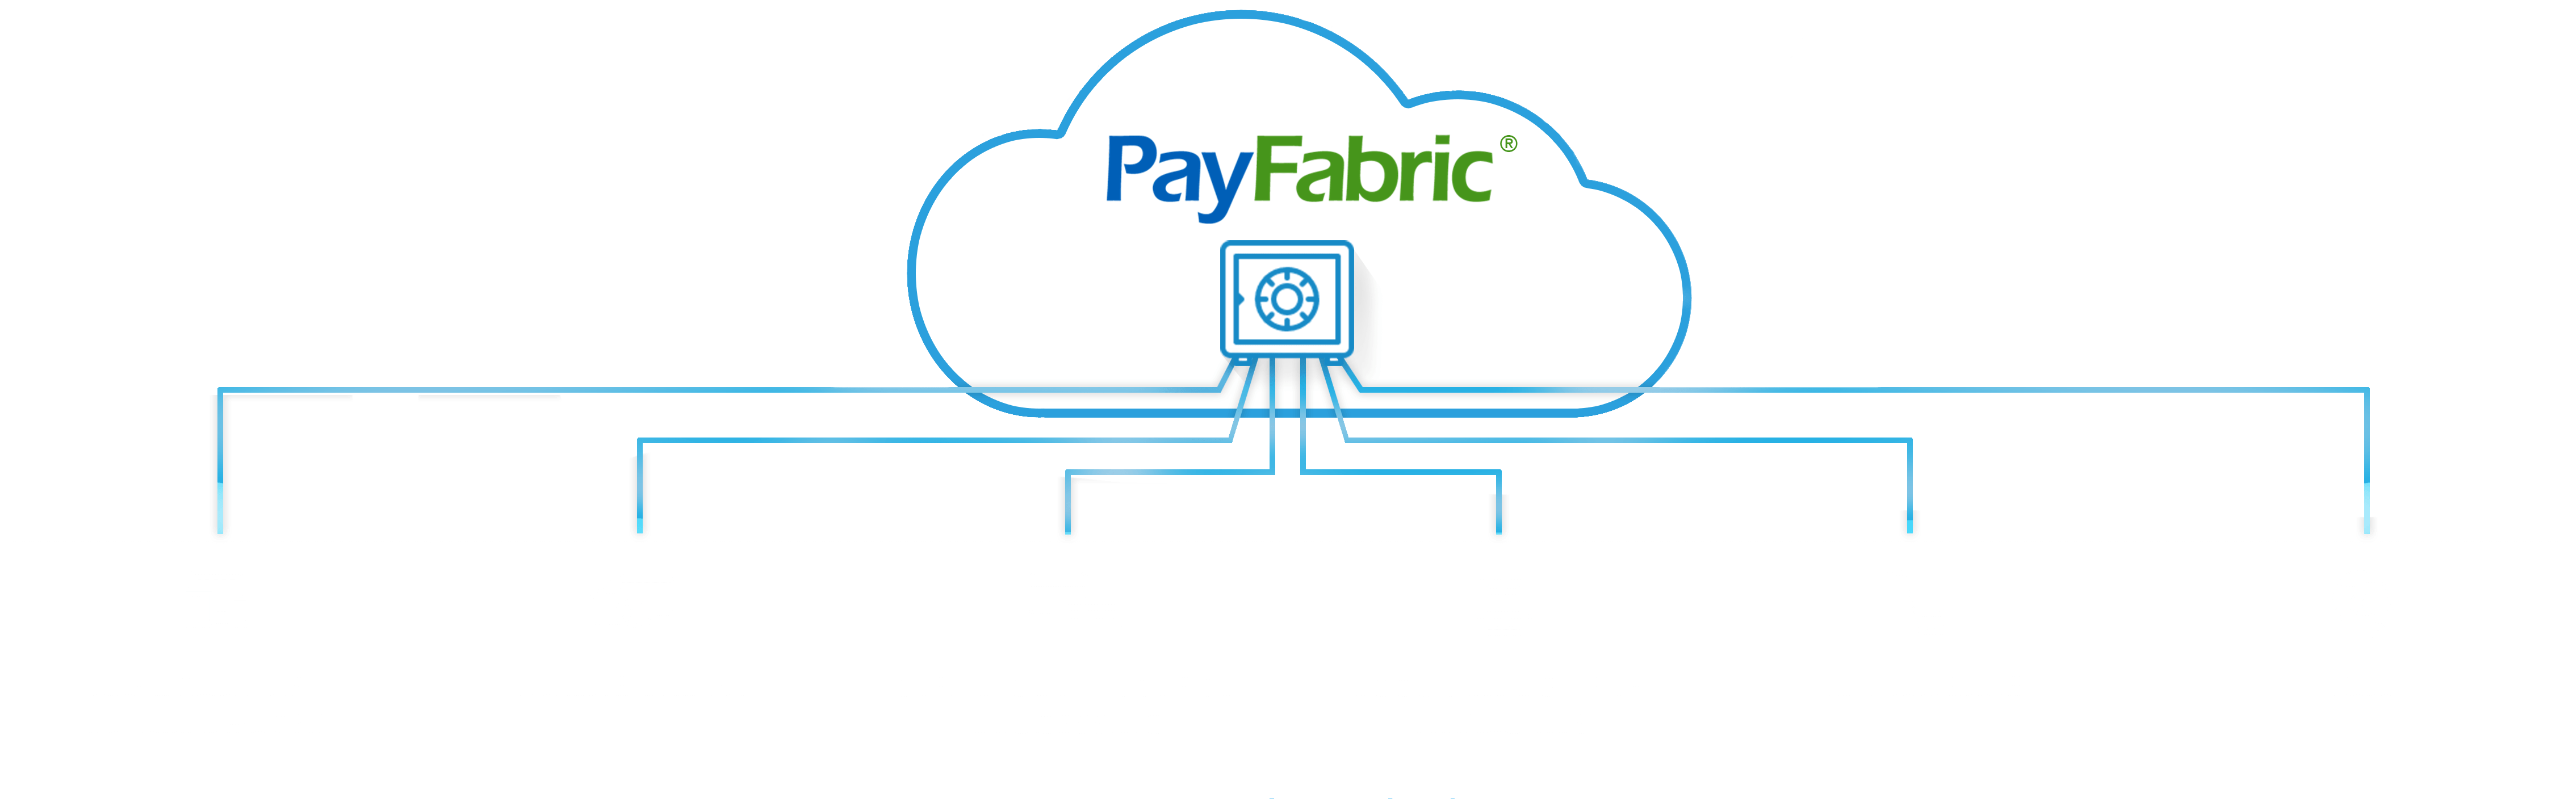 Payment Solutions and Payment Processing l PayFabric